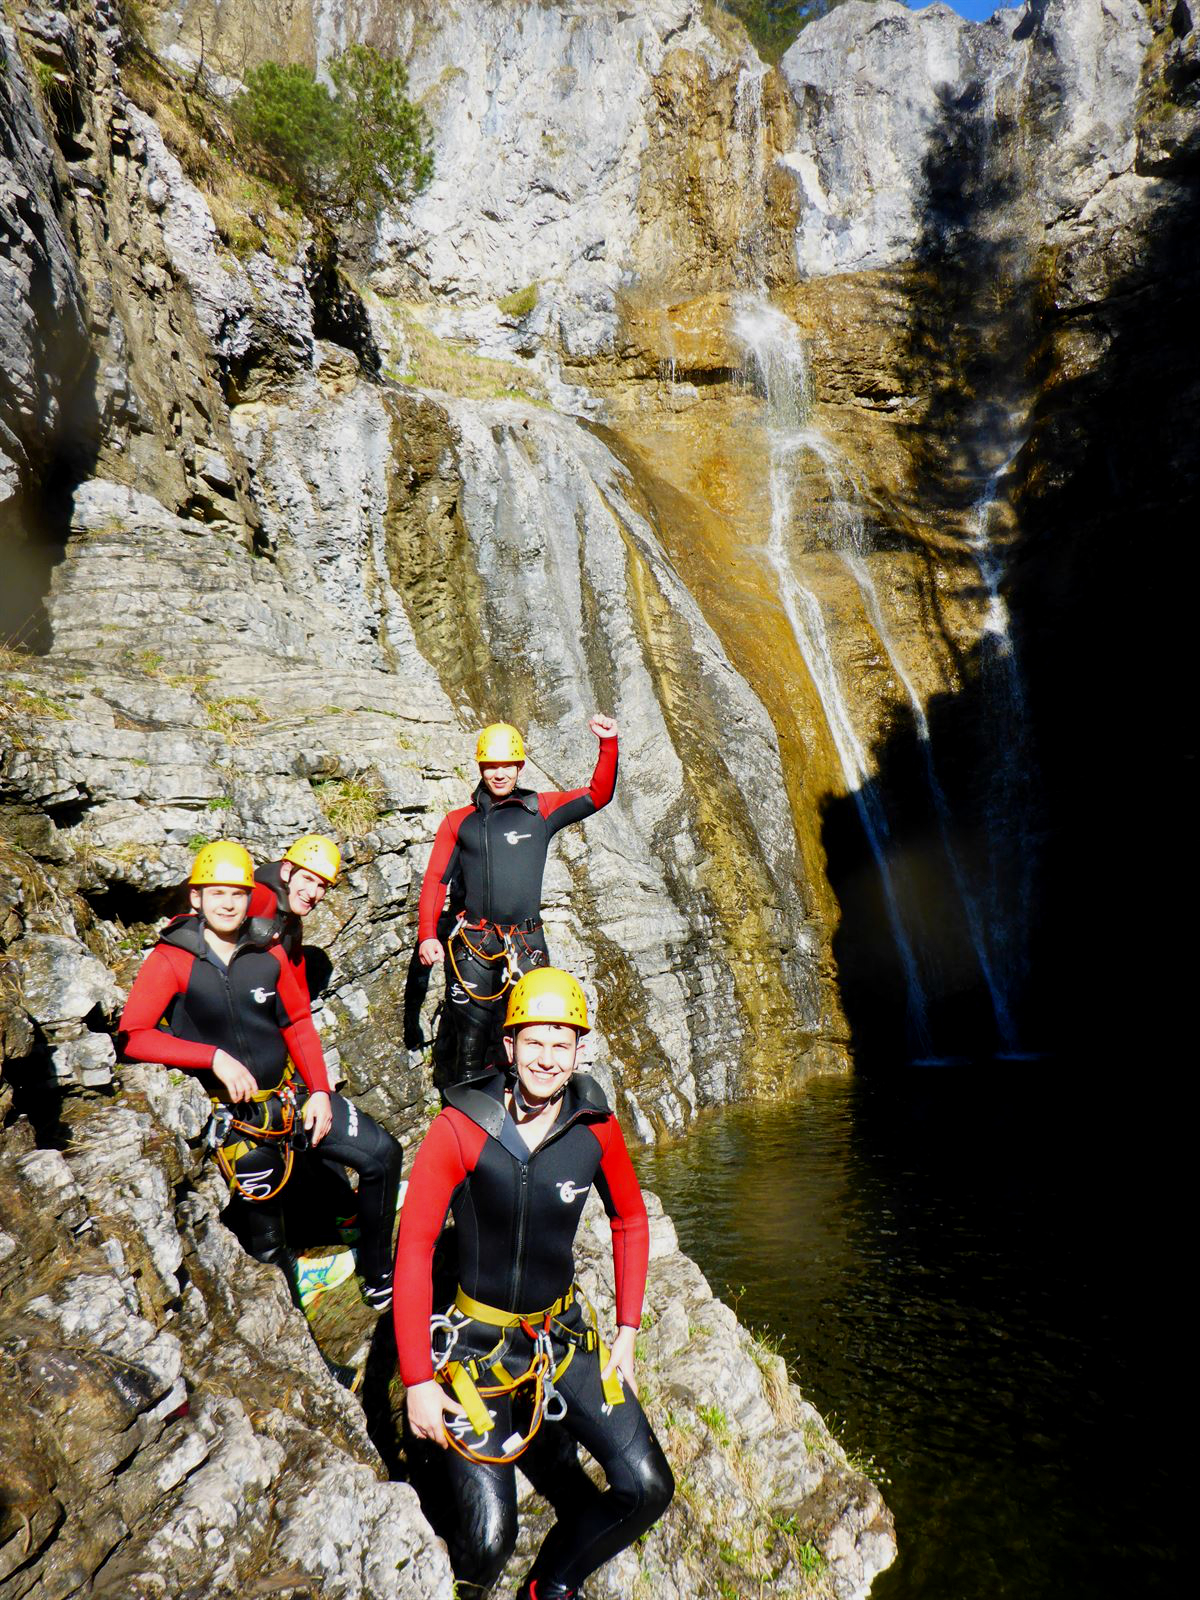 Canyoning Junggesellenabschied